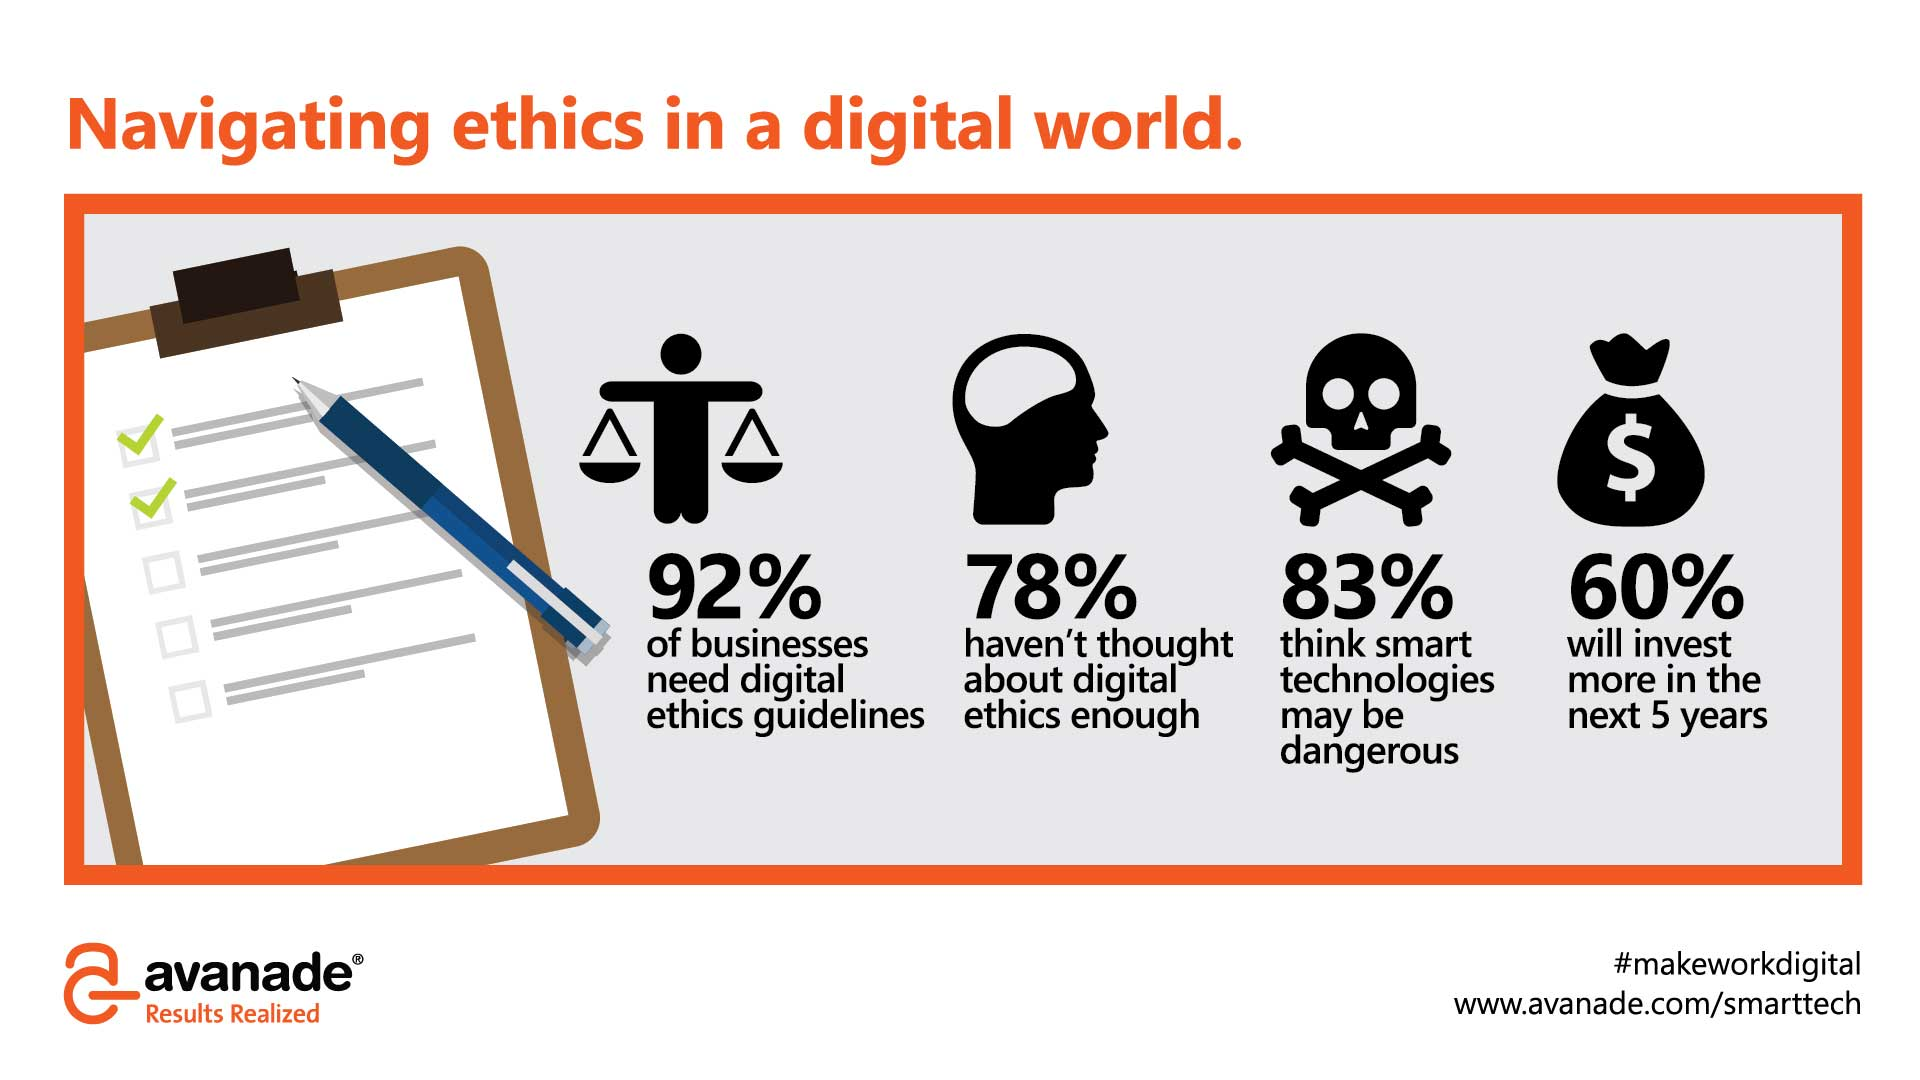 ethics in a digital world